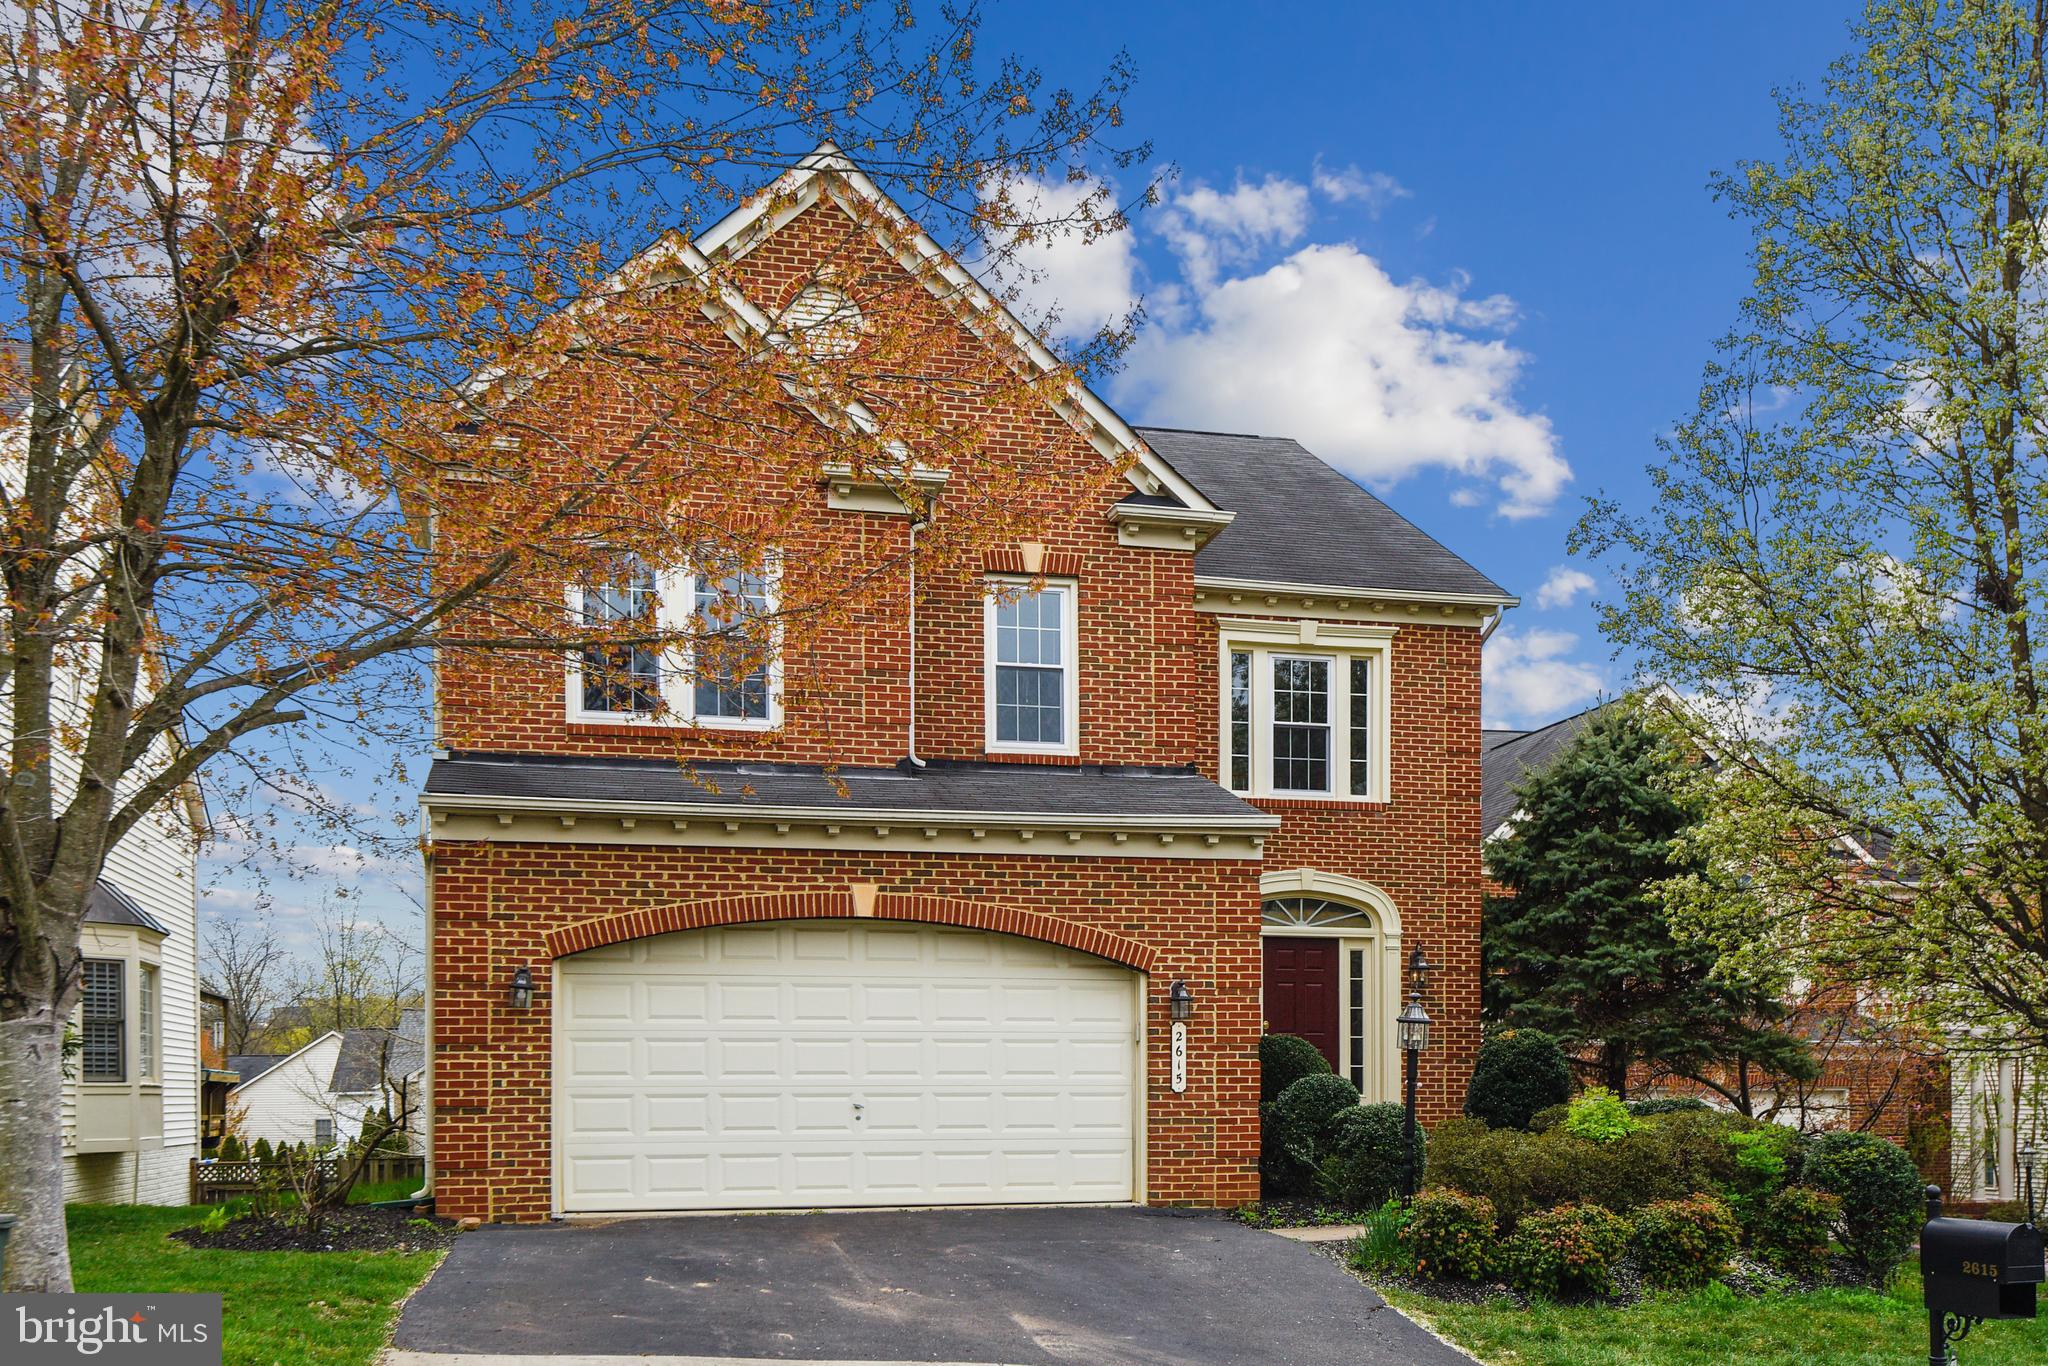 Virtual tour added - additional photos to be added in several hours.   Fantastic home located in the heart of Vienna, voted Virginia's 2019 Best Place to Live by national rankings site 'HomeSnacks' and ranked #3 small city in the US by CNN!  The home is close to Mosaic District, Tyson's Corner, various commuter routes, multiple metro stations and many Vienna parks and other attractions.  Beyond its great location, this home is filled with charm and light!  It has an open plan of over 4000 sf on three finished levels with wonderful flow.  The kitchen /breakfast room is open to the great room.  Most of the windows were replaced, several rooms have beautiful plantation shutters and the home is freshly painted and has brand new carpet!  The walk out lower level, with a full bath, has a large open area with a dishwasher & fridge.  The media room has a closet and could be used as a NON-LEGAL bedroom.  Additionally, there is a carpeted storage room which could be a play room or office (or a storage room!).  The basement rented out for $1100/mo and the back door has a separate lock for any tenant.